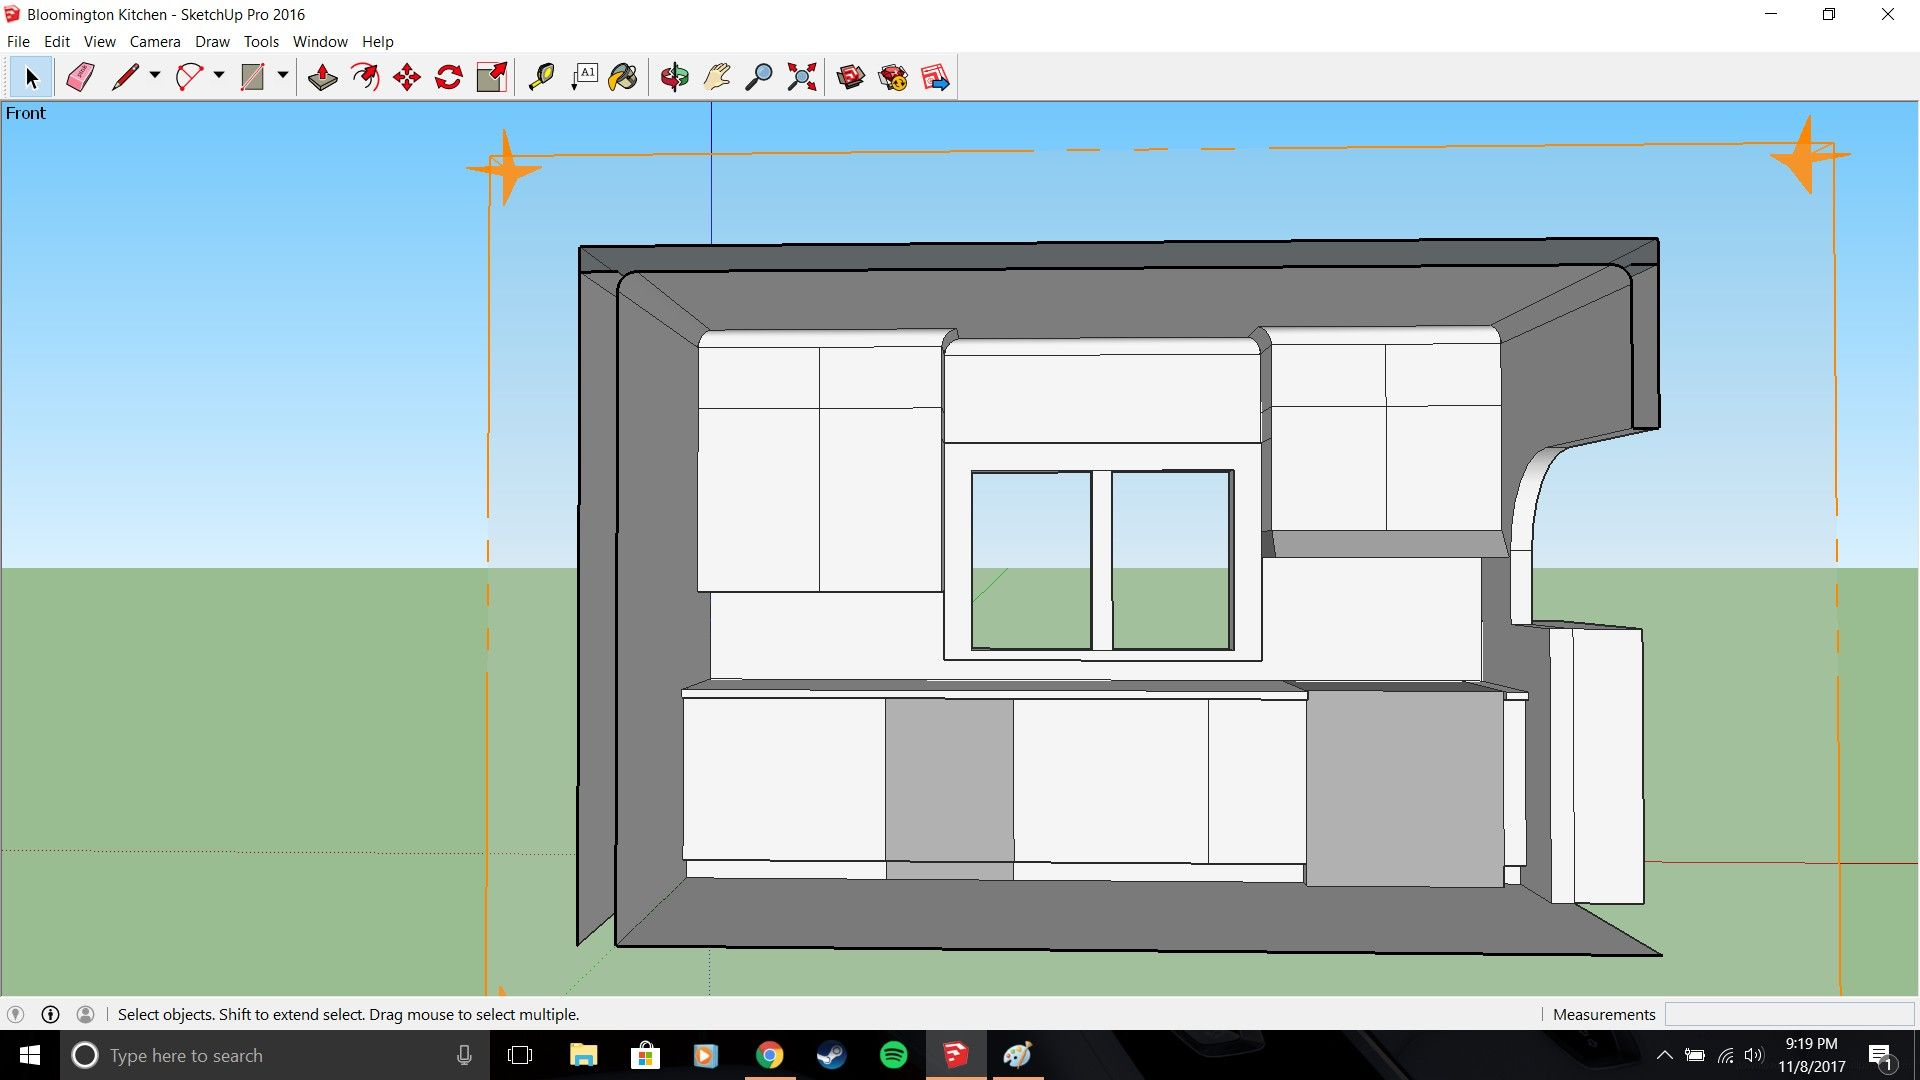 Google Sketchup Model Of The Cabinet Arrangement For The South